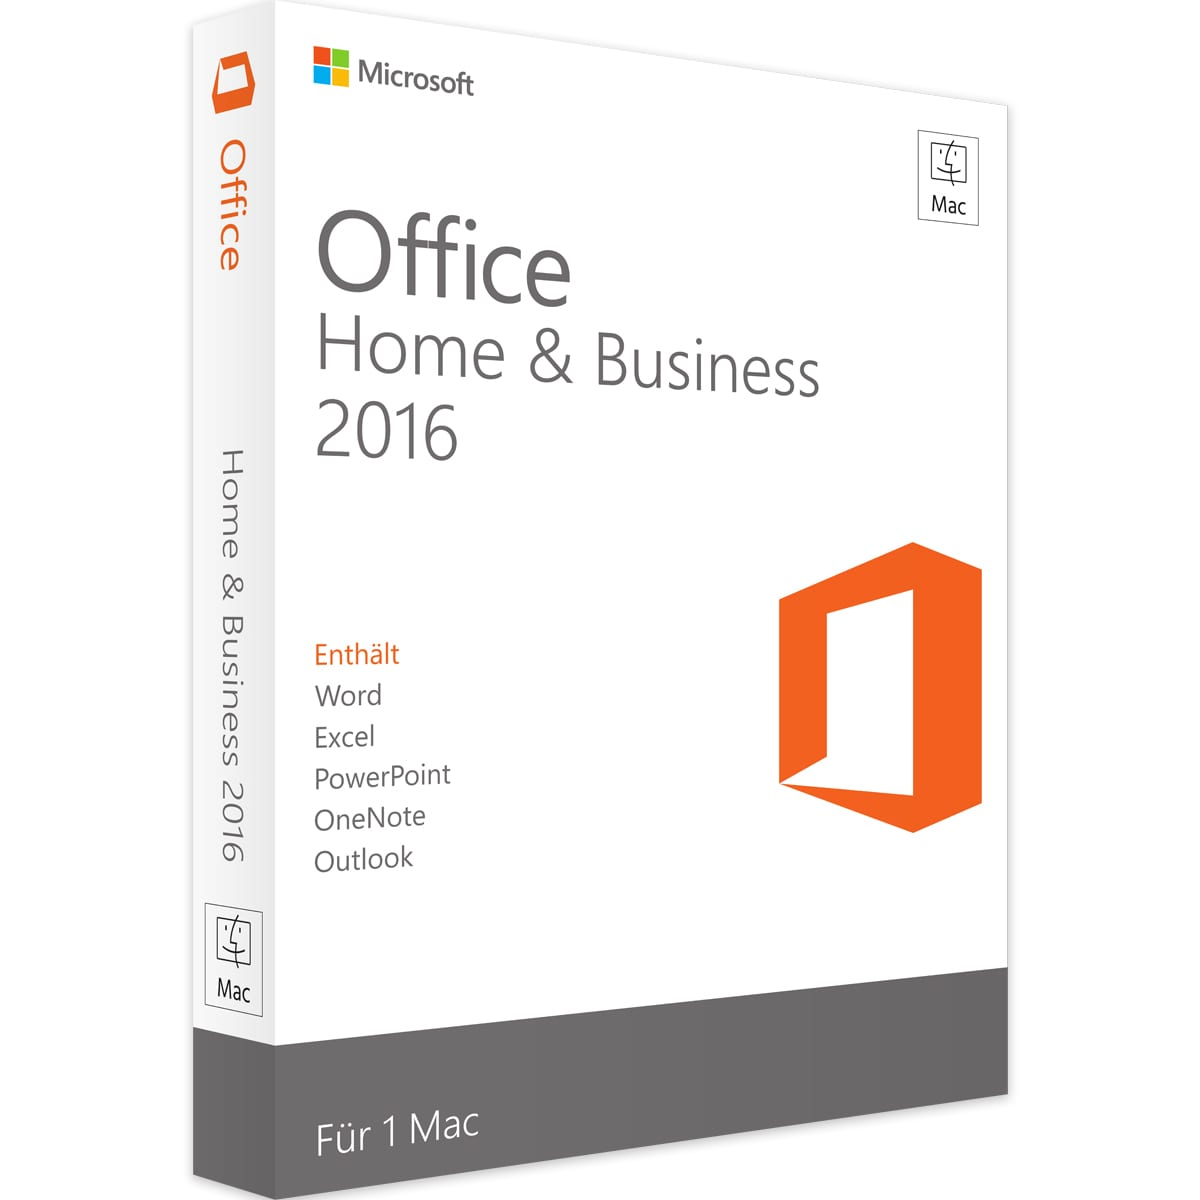 office-home-and-business-2016-mac-min